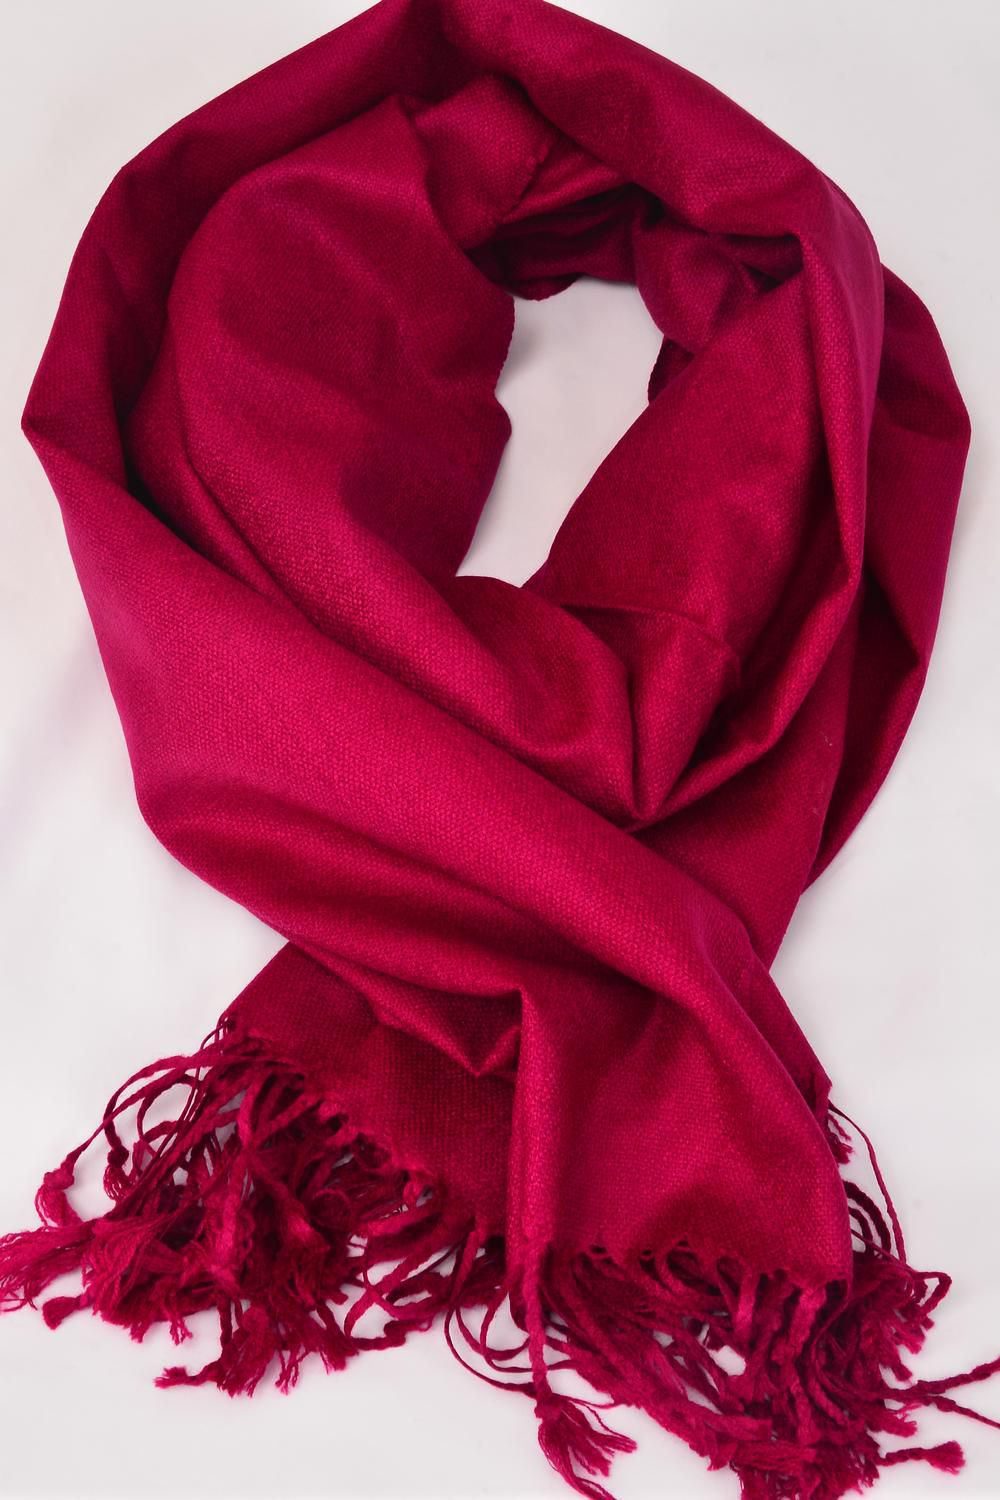 "**Plum** Size-70""x 25"" Wide,70% Pashmina,30% Silk,W OPP Bag Scarf Pashmina Plum/PC"